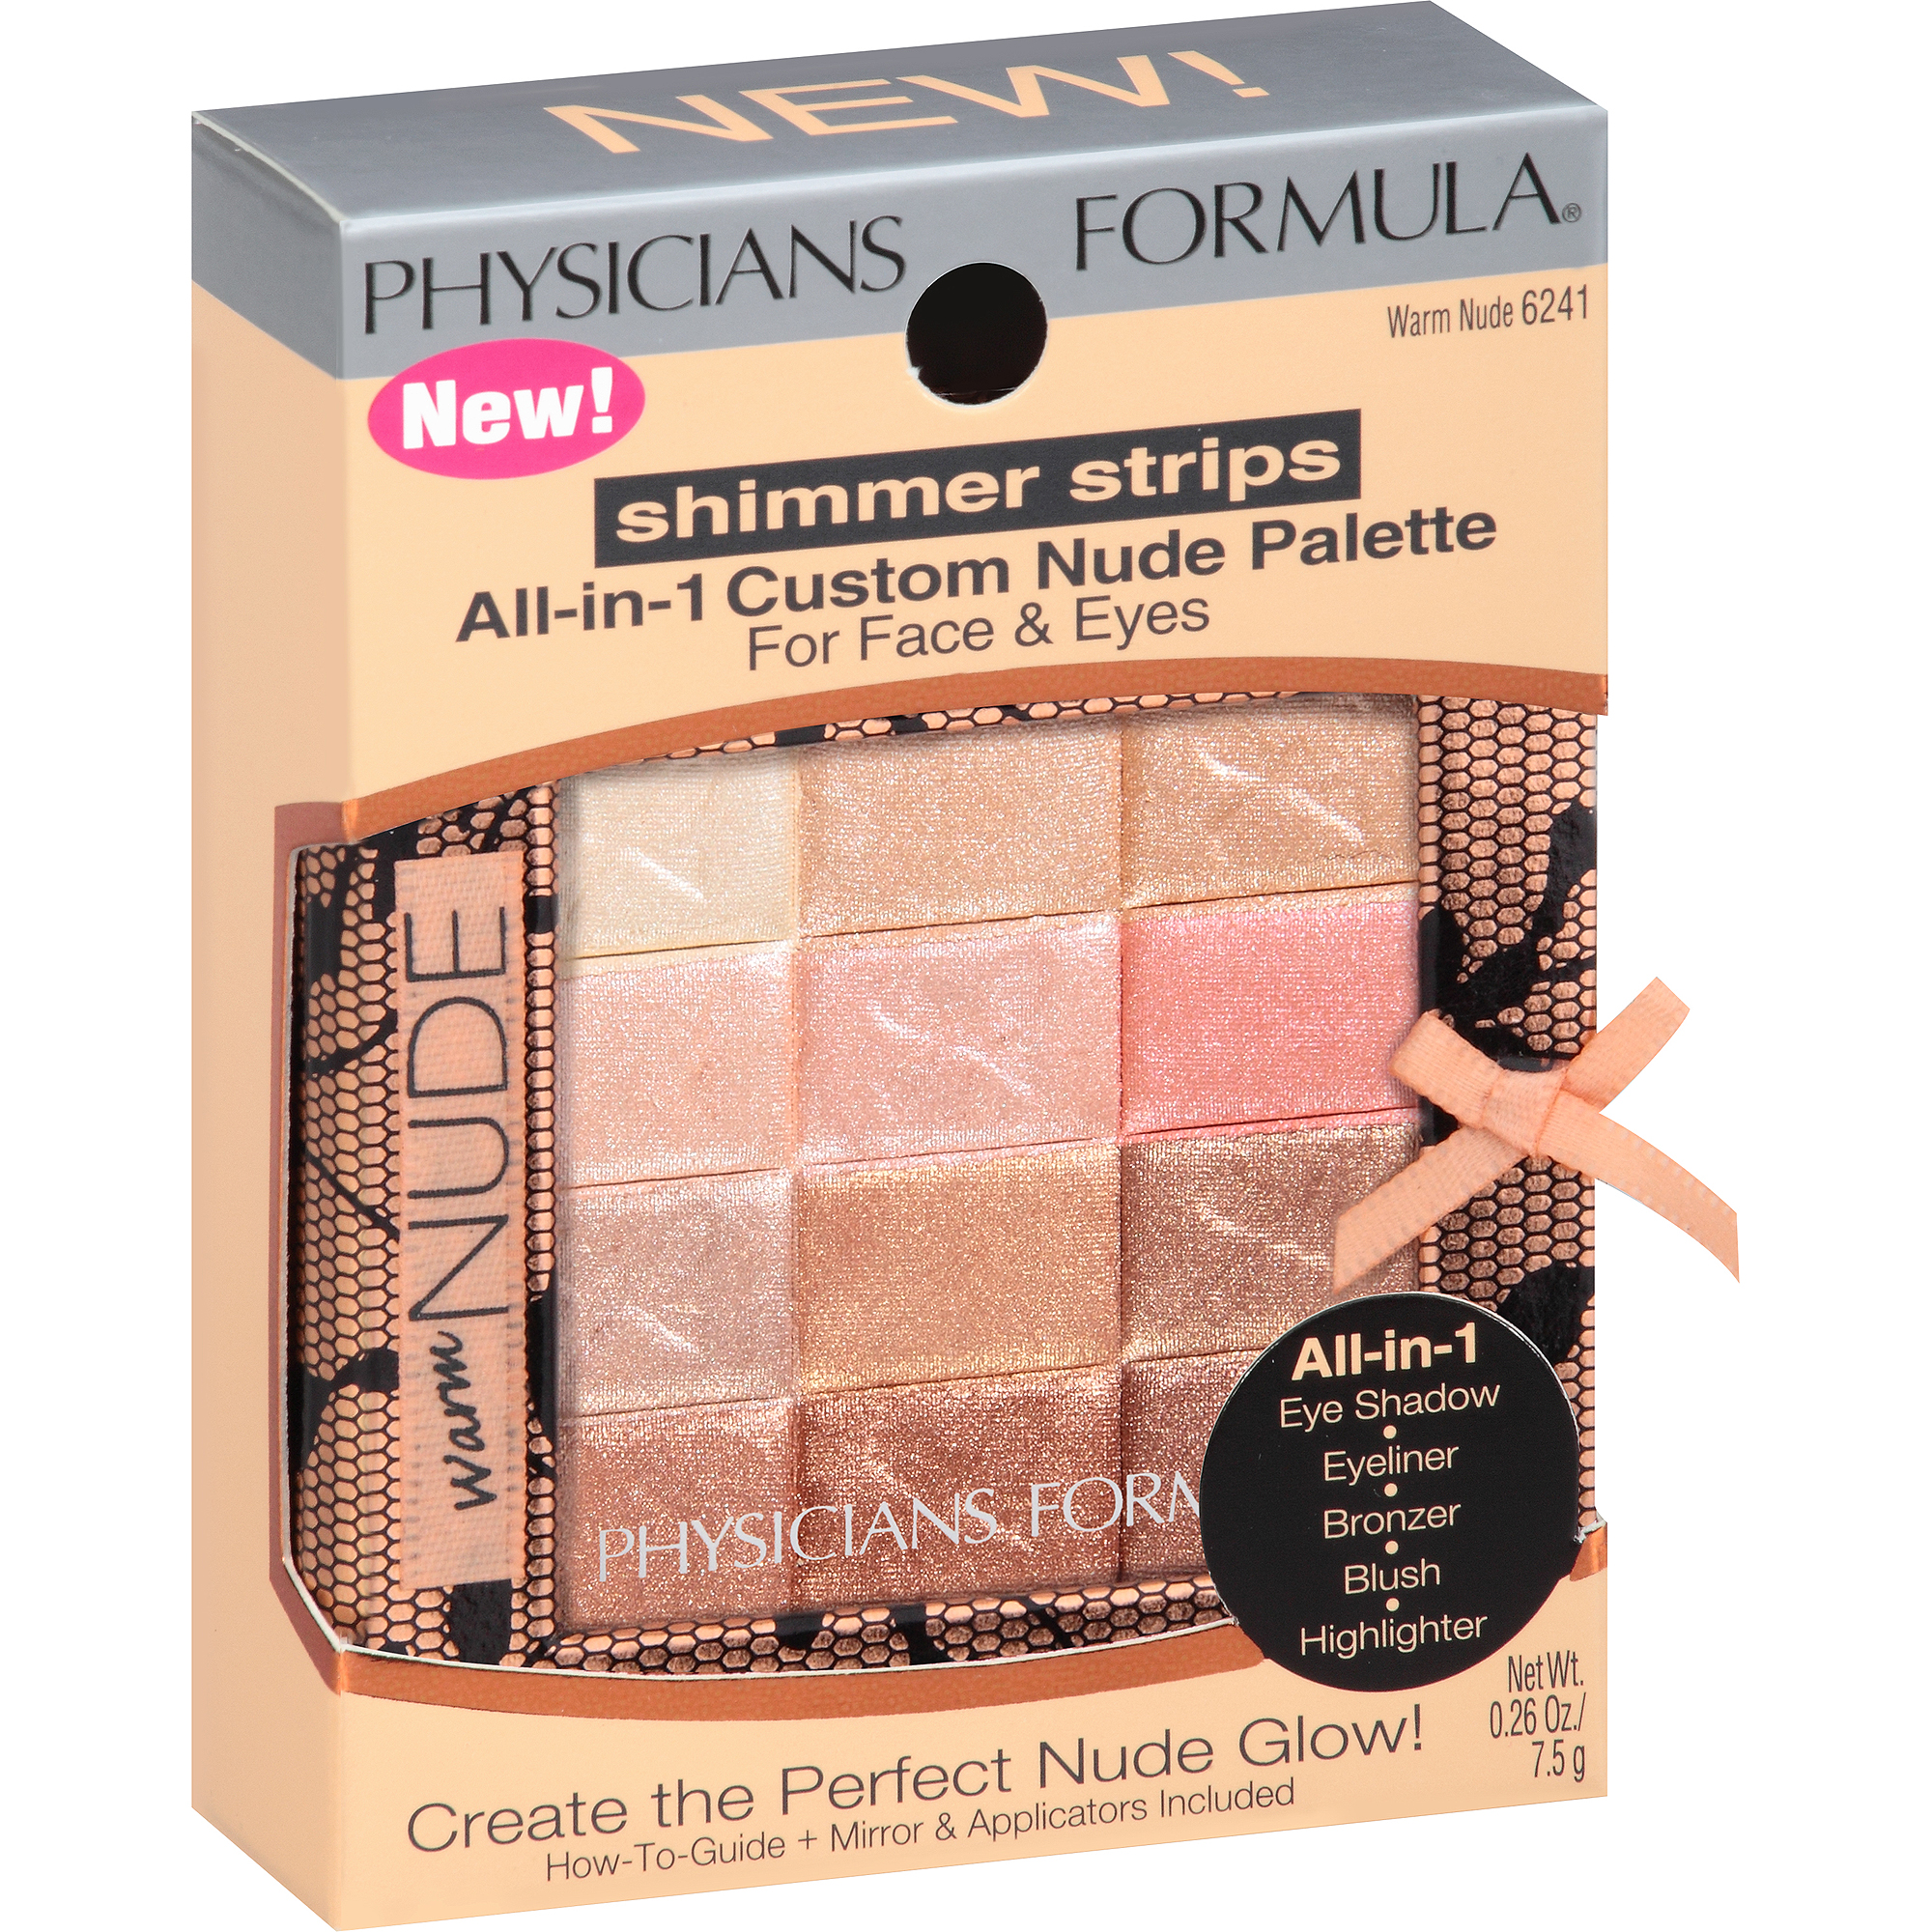 Physicians Formula Shimmer Strips All-in-One Custom Palette for Face & Eyes, 6241 Warm Nude, 0.26 oz